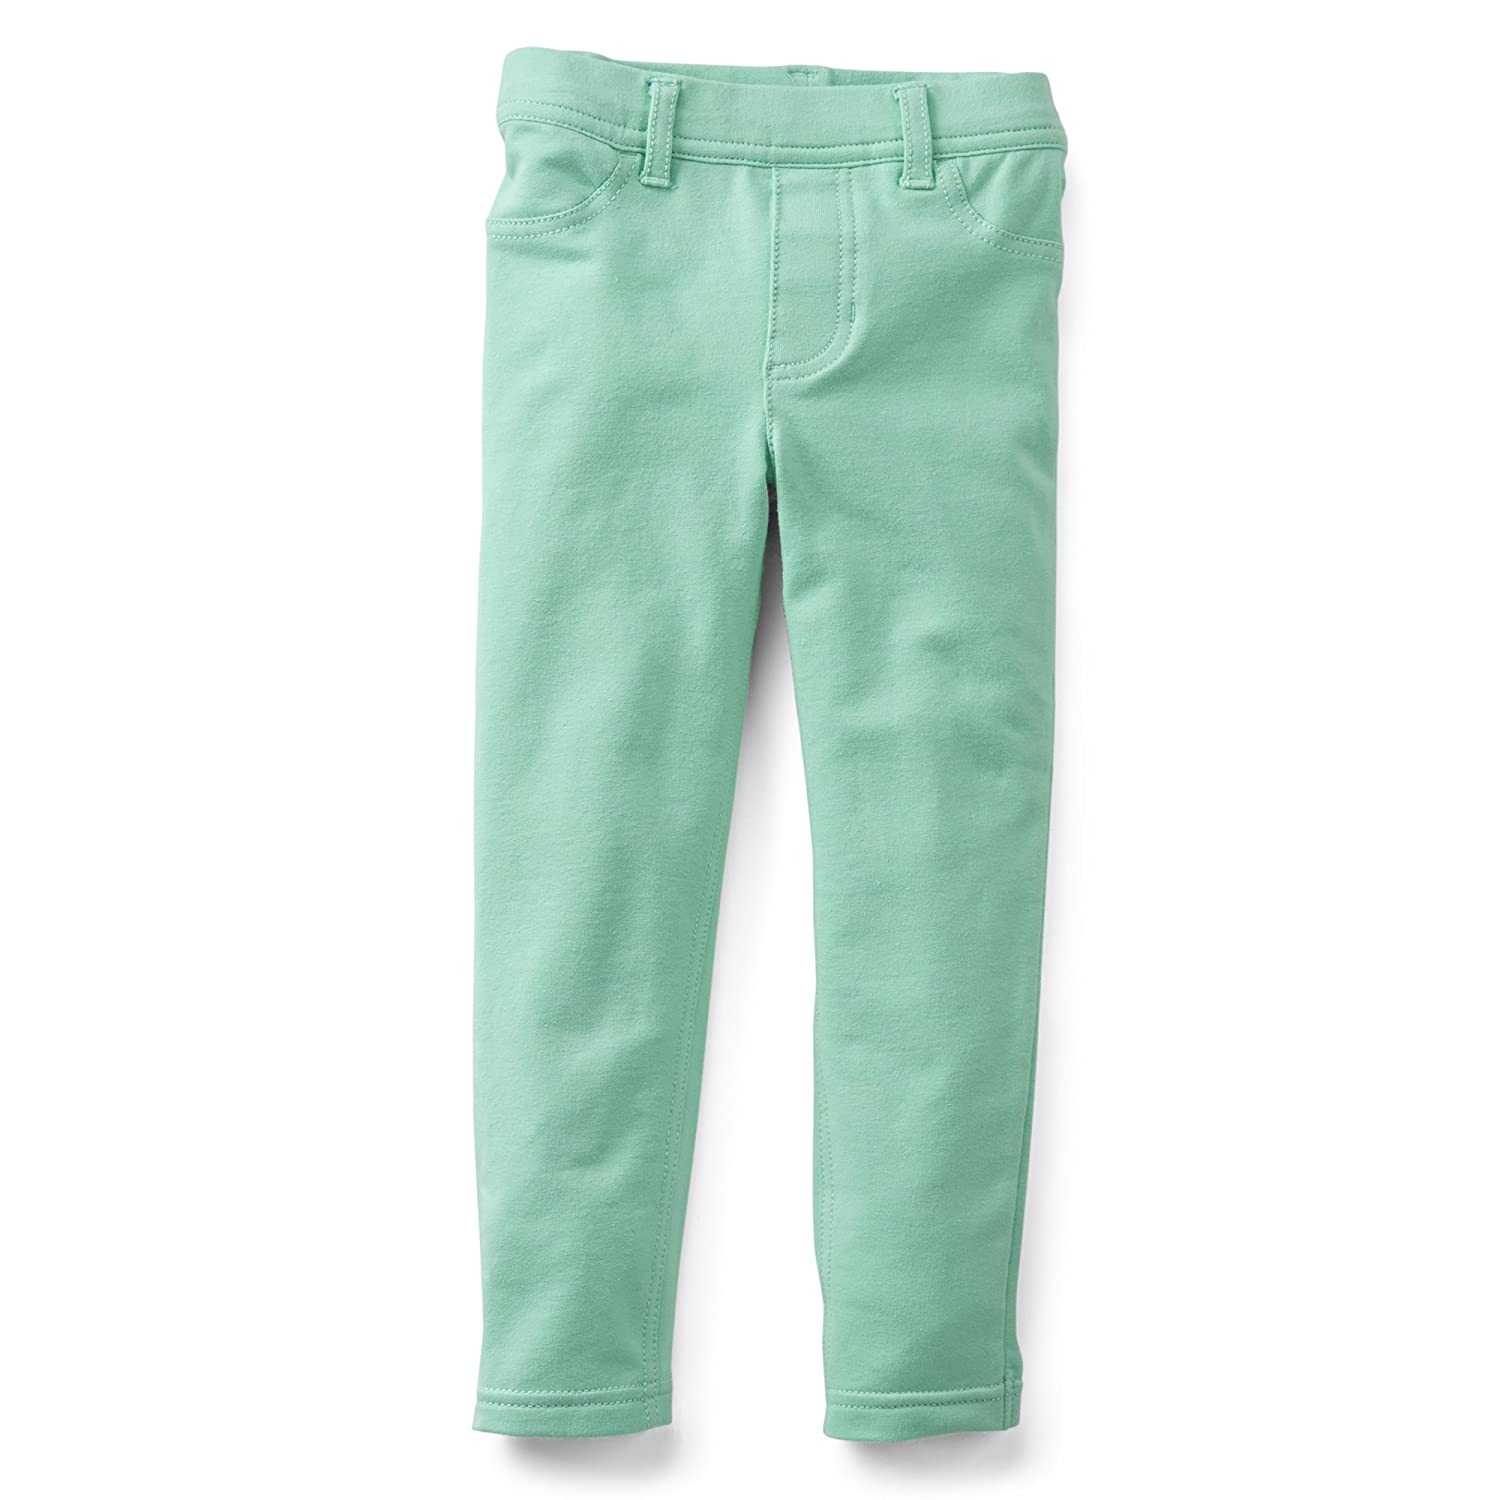 9 Months, Mint Carters Girls French Terry Stretch Skinny Pants